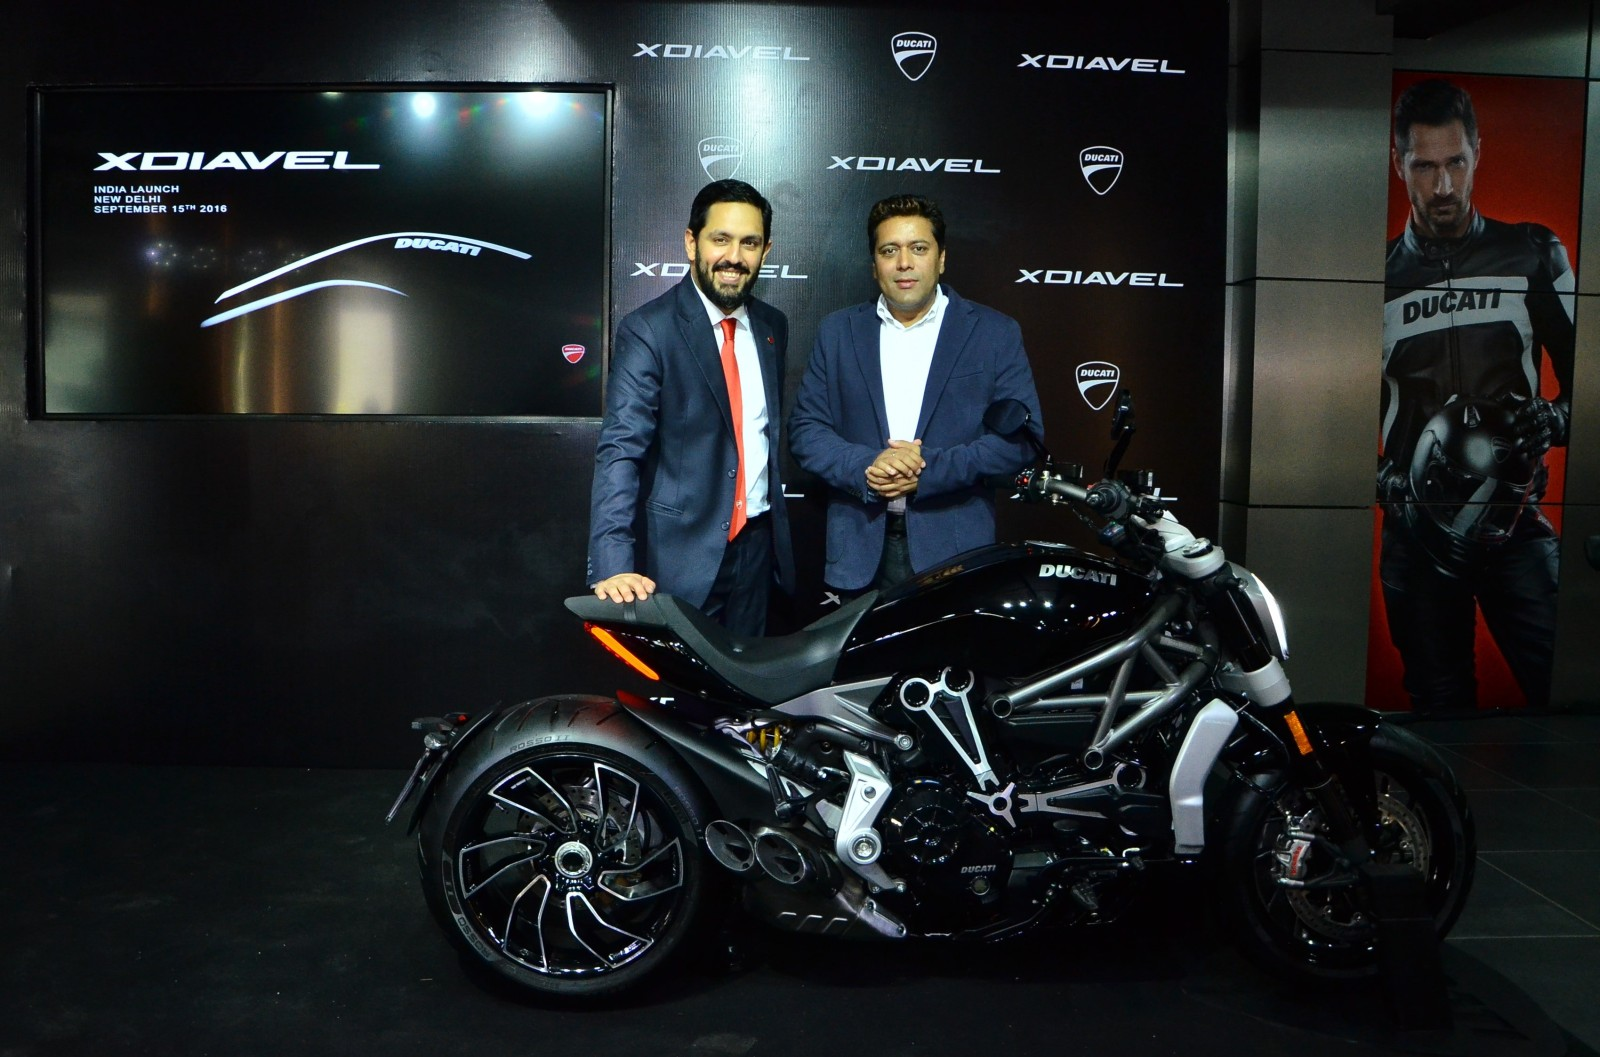 new-ducati-xdiavel-and-xdiavel-s-launched-in-india-2